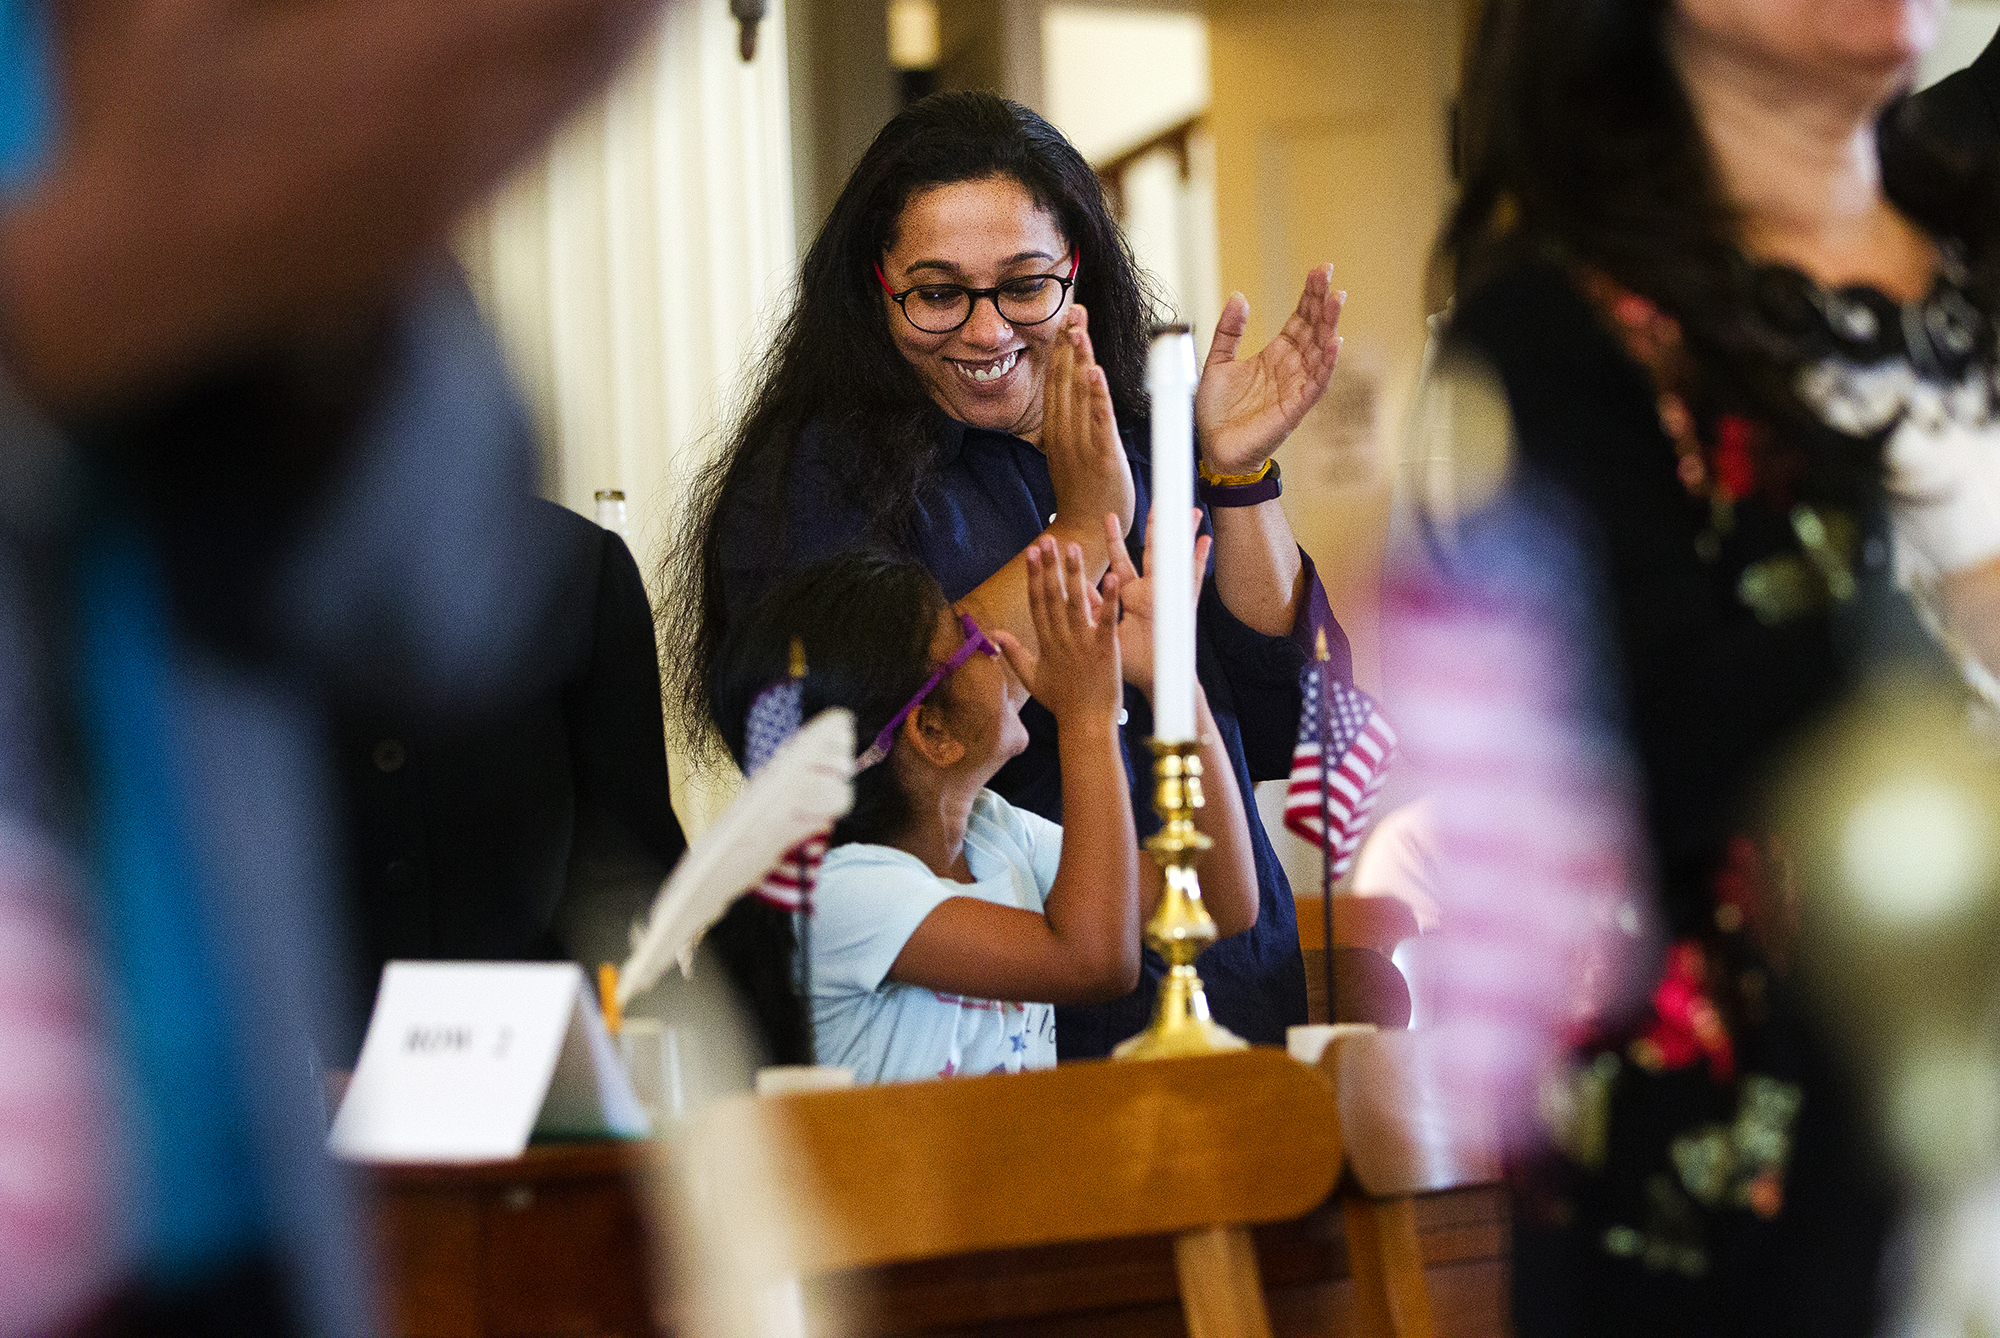 Archana Rajan smiles at her daughter Nakshatra Nambiar as candidates for naturalization applaud after taking their oath during a Naturalization Ceremony at the Old State Capitol Friday, June 22, 2018. [Ted Schurter/The State Journal-Register]